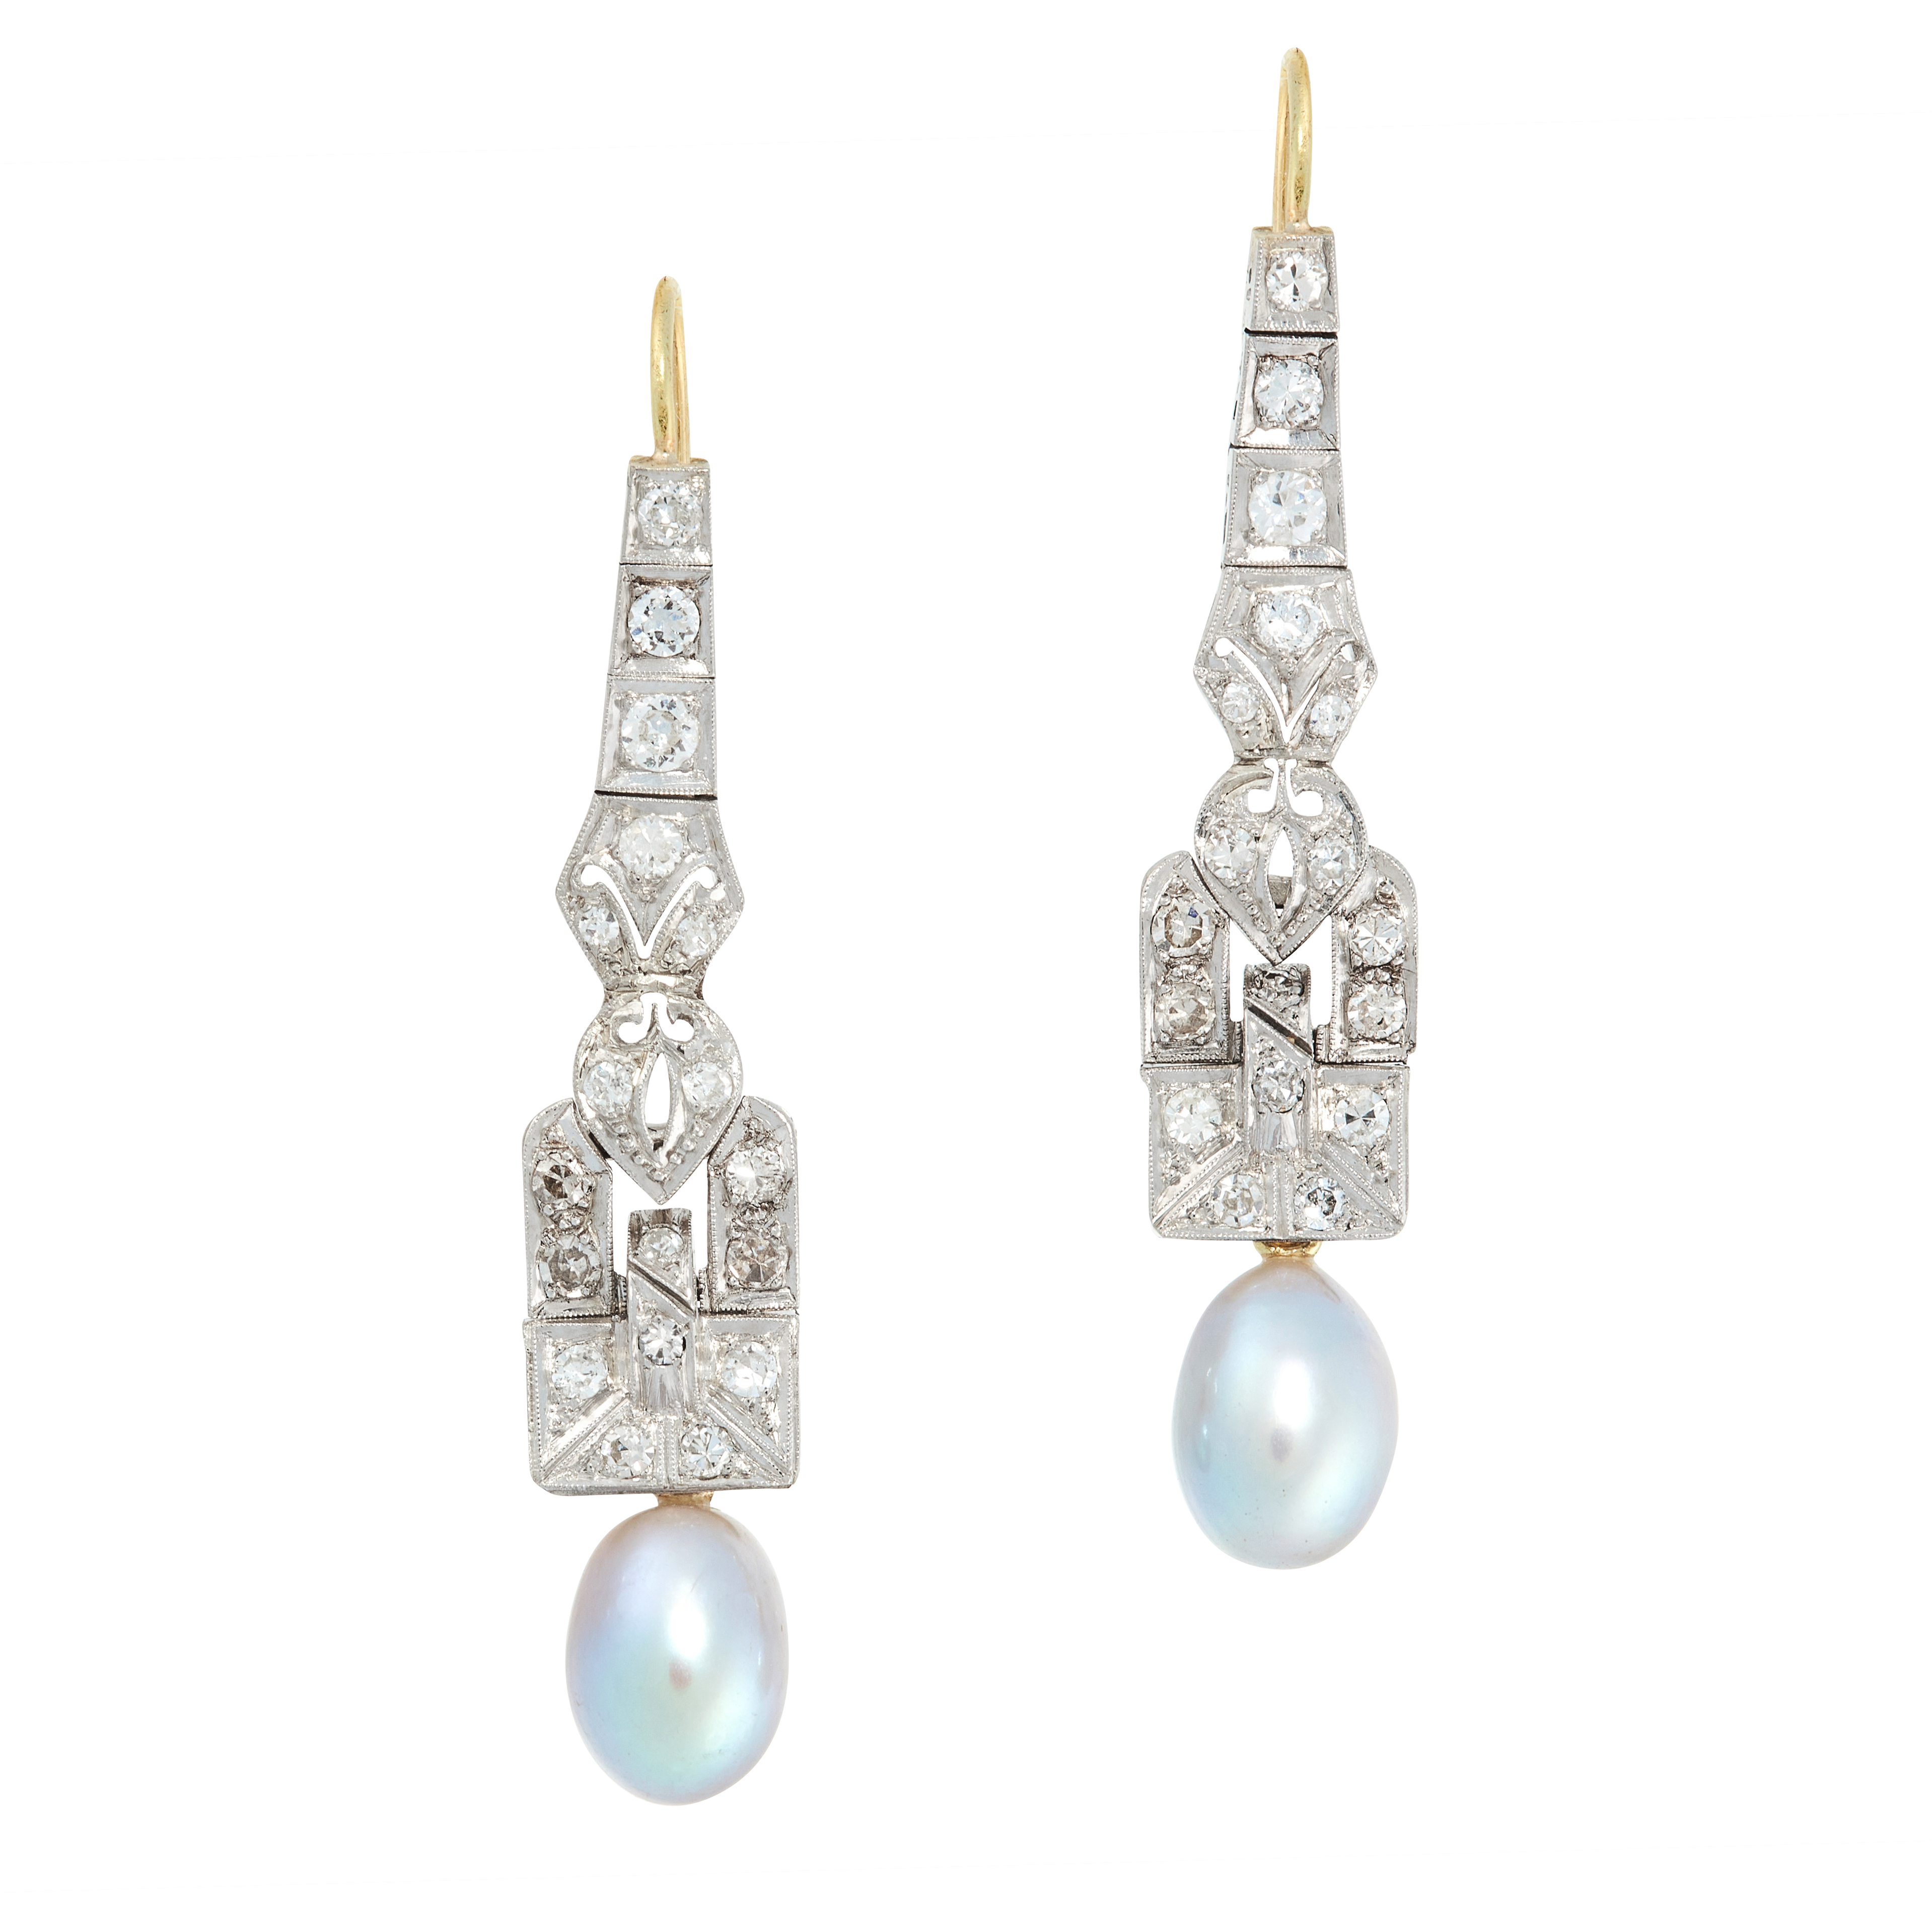 A PAIR OF ART DECO PEARL AND DIAMOND EARRINGS, EARLY 20TH CENTURY in platinum and yellow gold, the